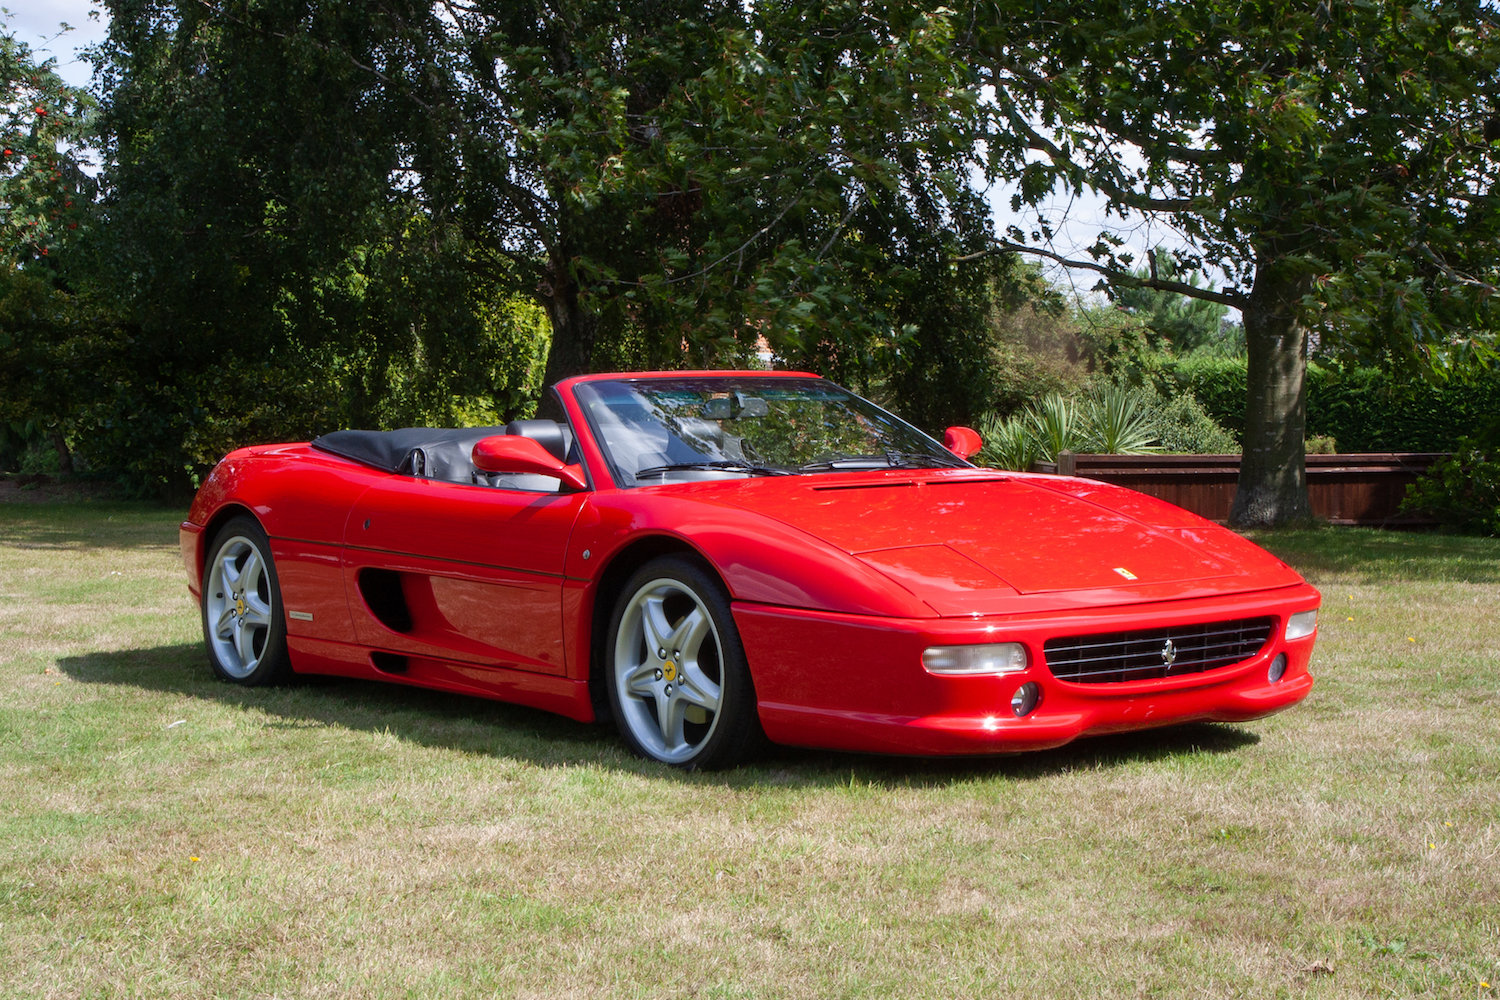 1996 Ferrari F355 Spider Manual LHD For Sale (picture 1 of 6)